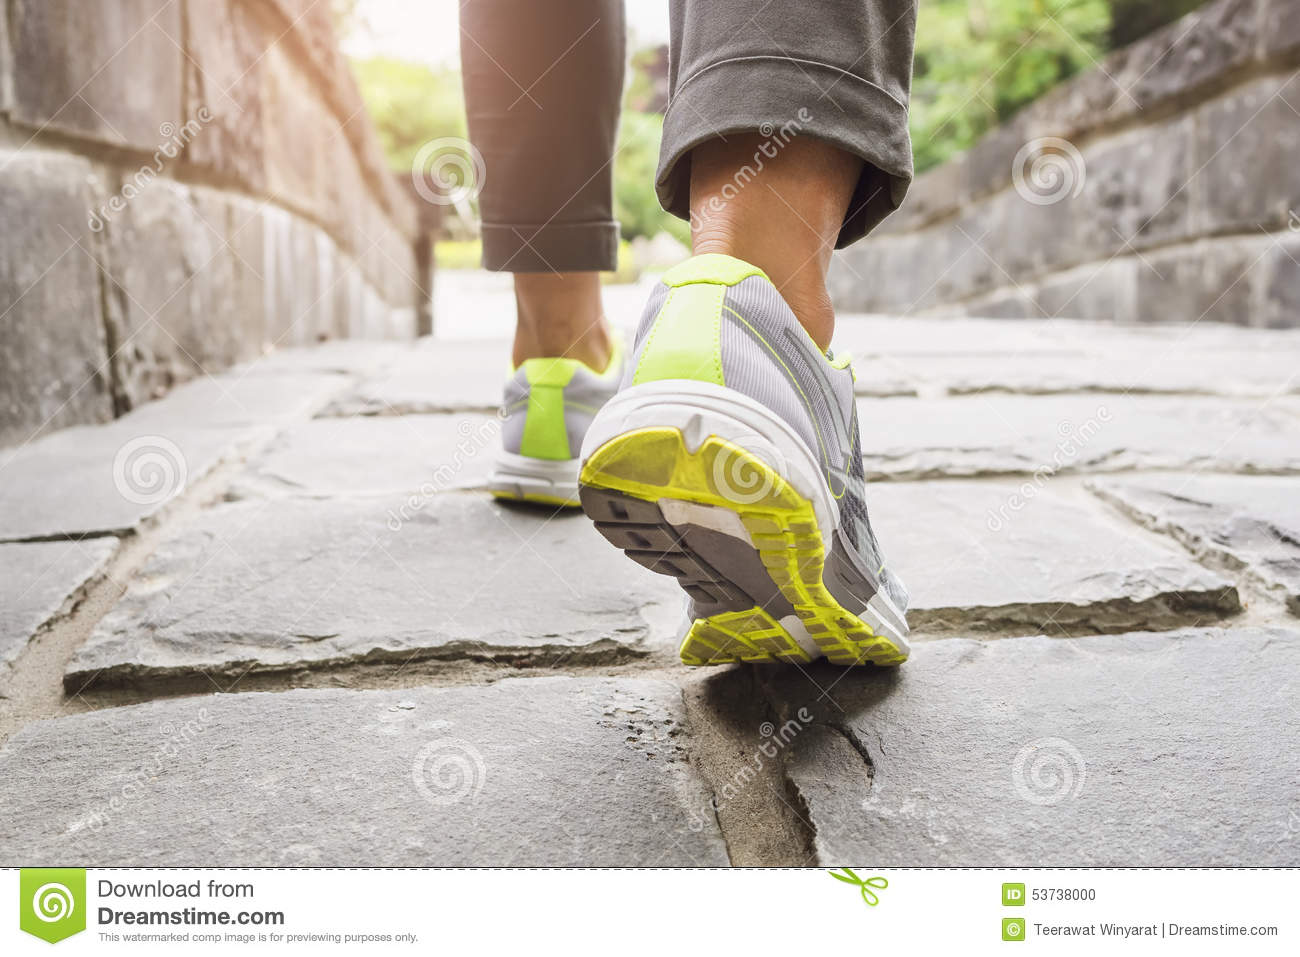 Woman Walking on trail, Outdoor exercise